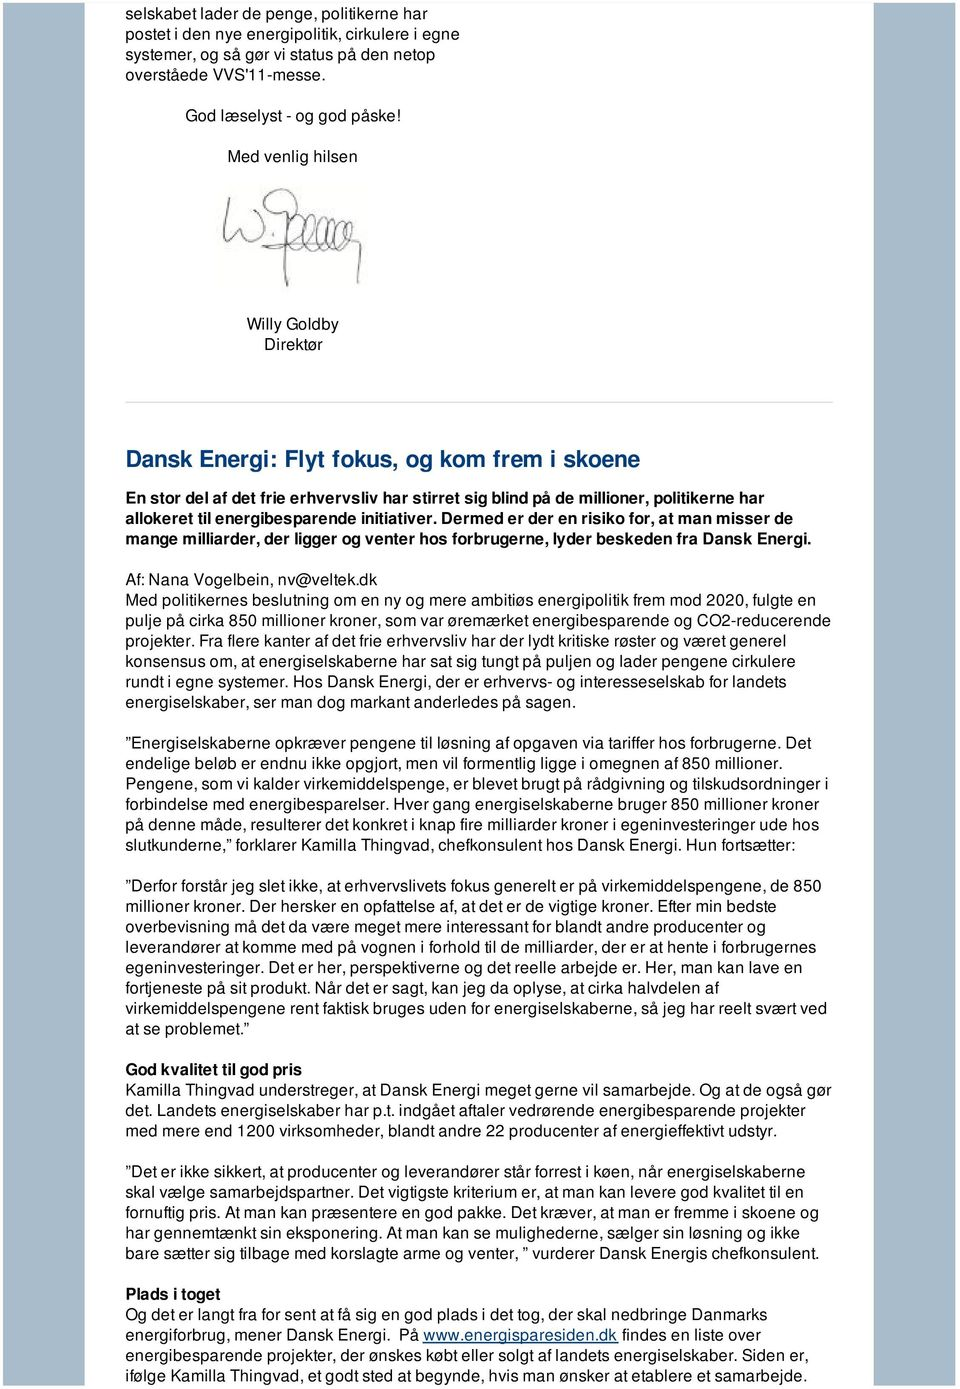 energibesparende initiativer. Dermed er der en risiko for, at man misser de mange milliarder, der ligger og venter hos forbrugerne, lyder beskeden fra Dansk Energi. Af: Nana Vogelbein, nv@veltek.